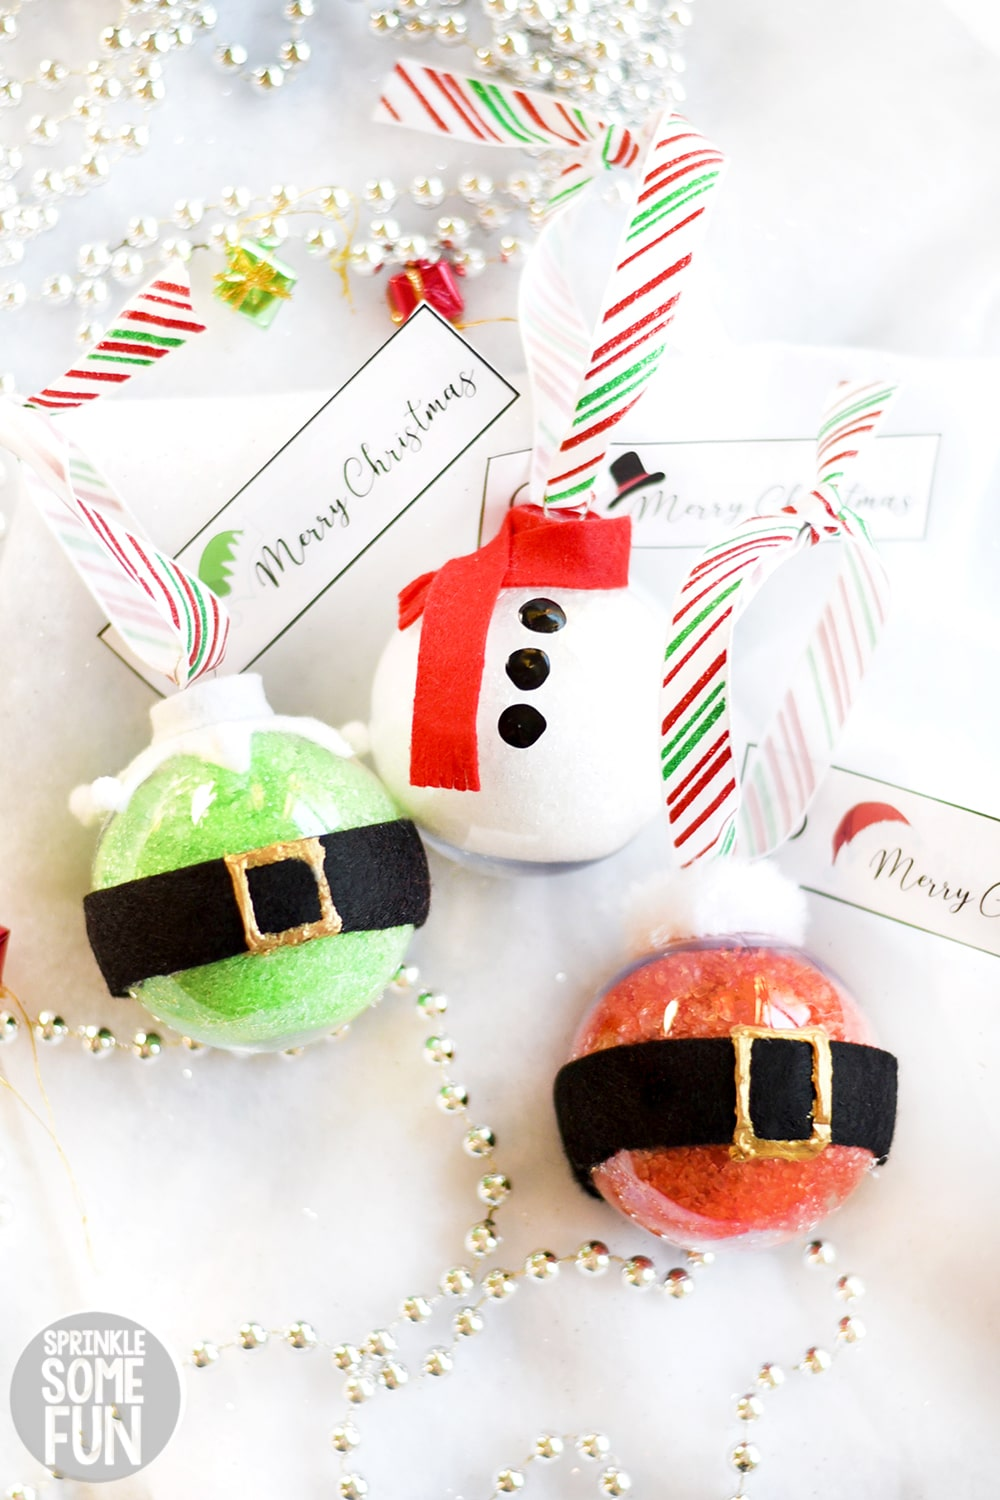 Bath Salt Ornaments with Snowman, Elf and Santa decorations